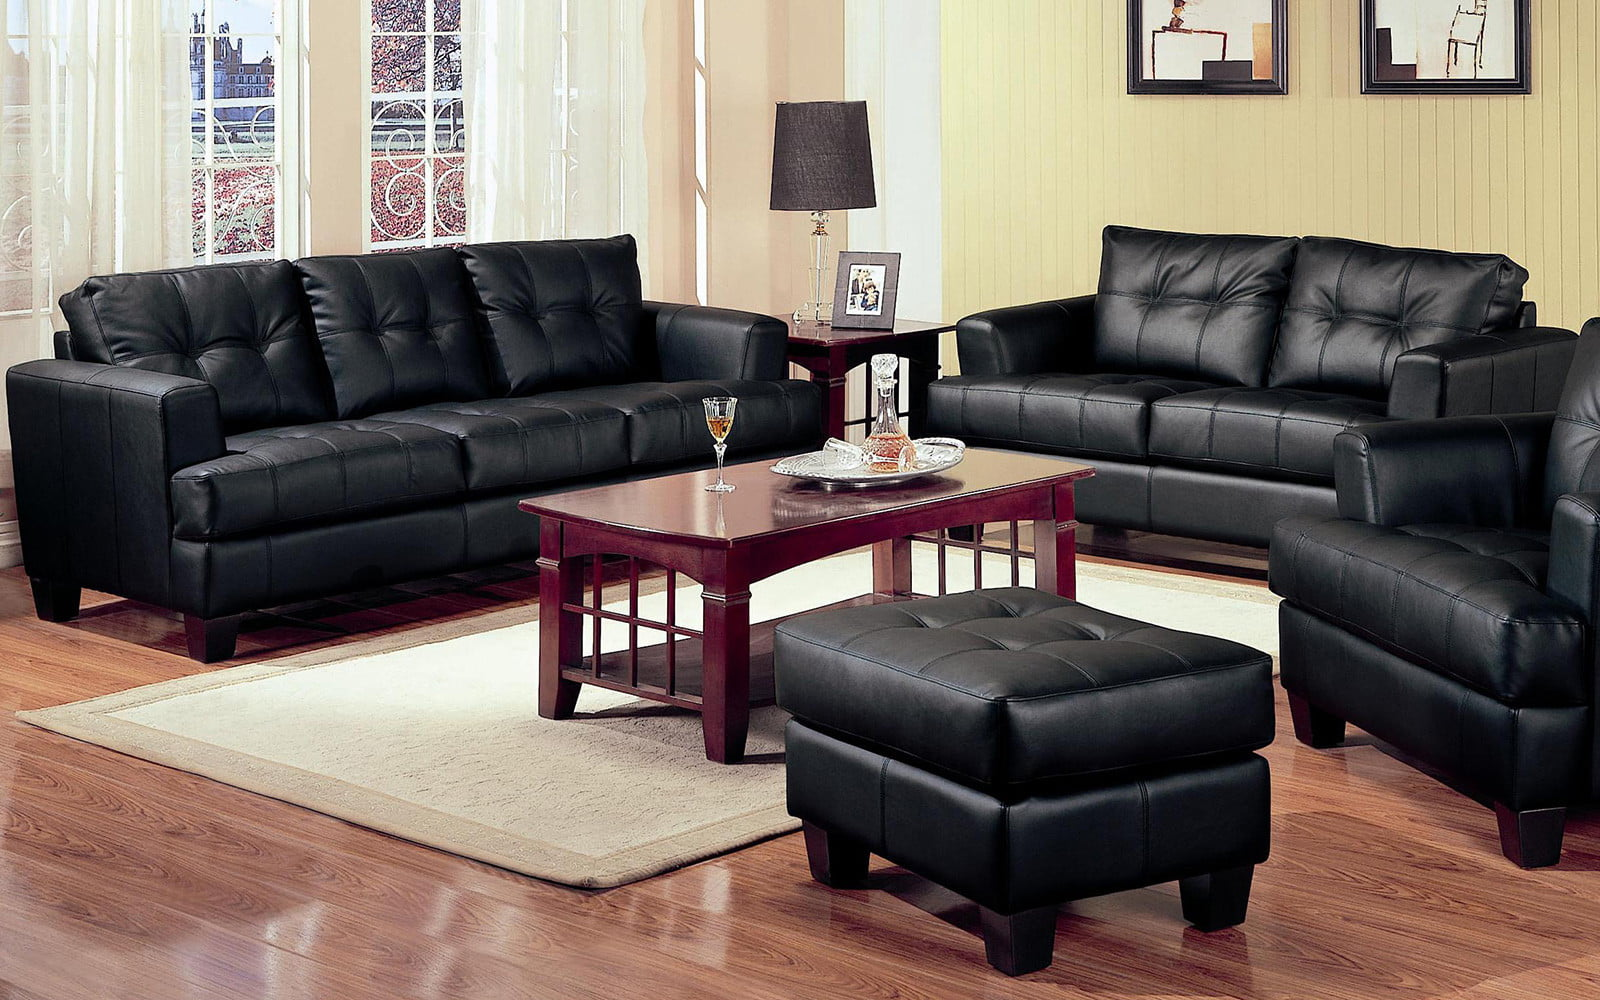 2 Piece Modern Black Bonded Leather Sofa and Loveseat Livingroom